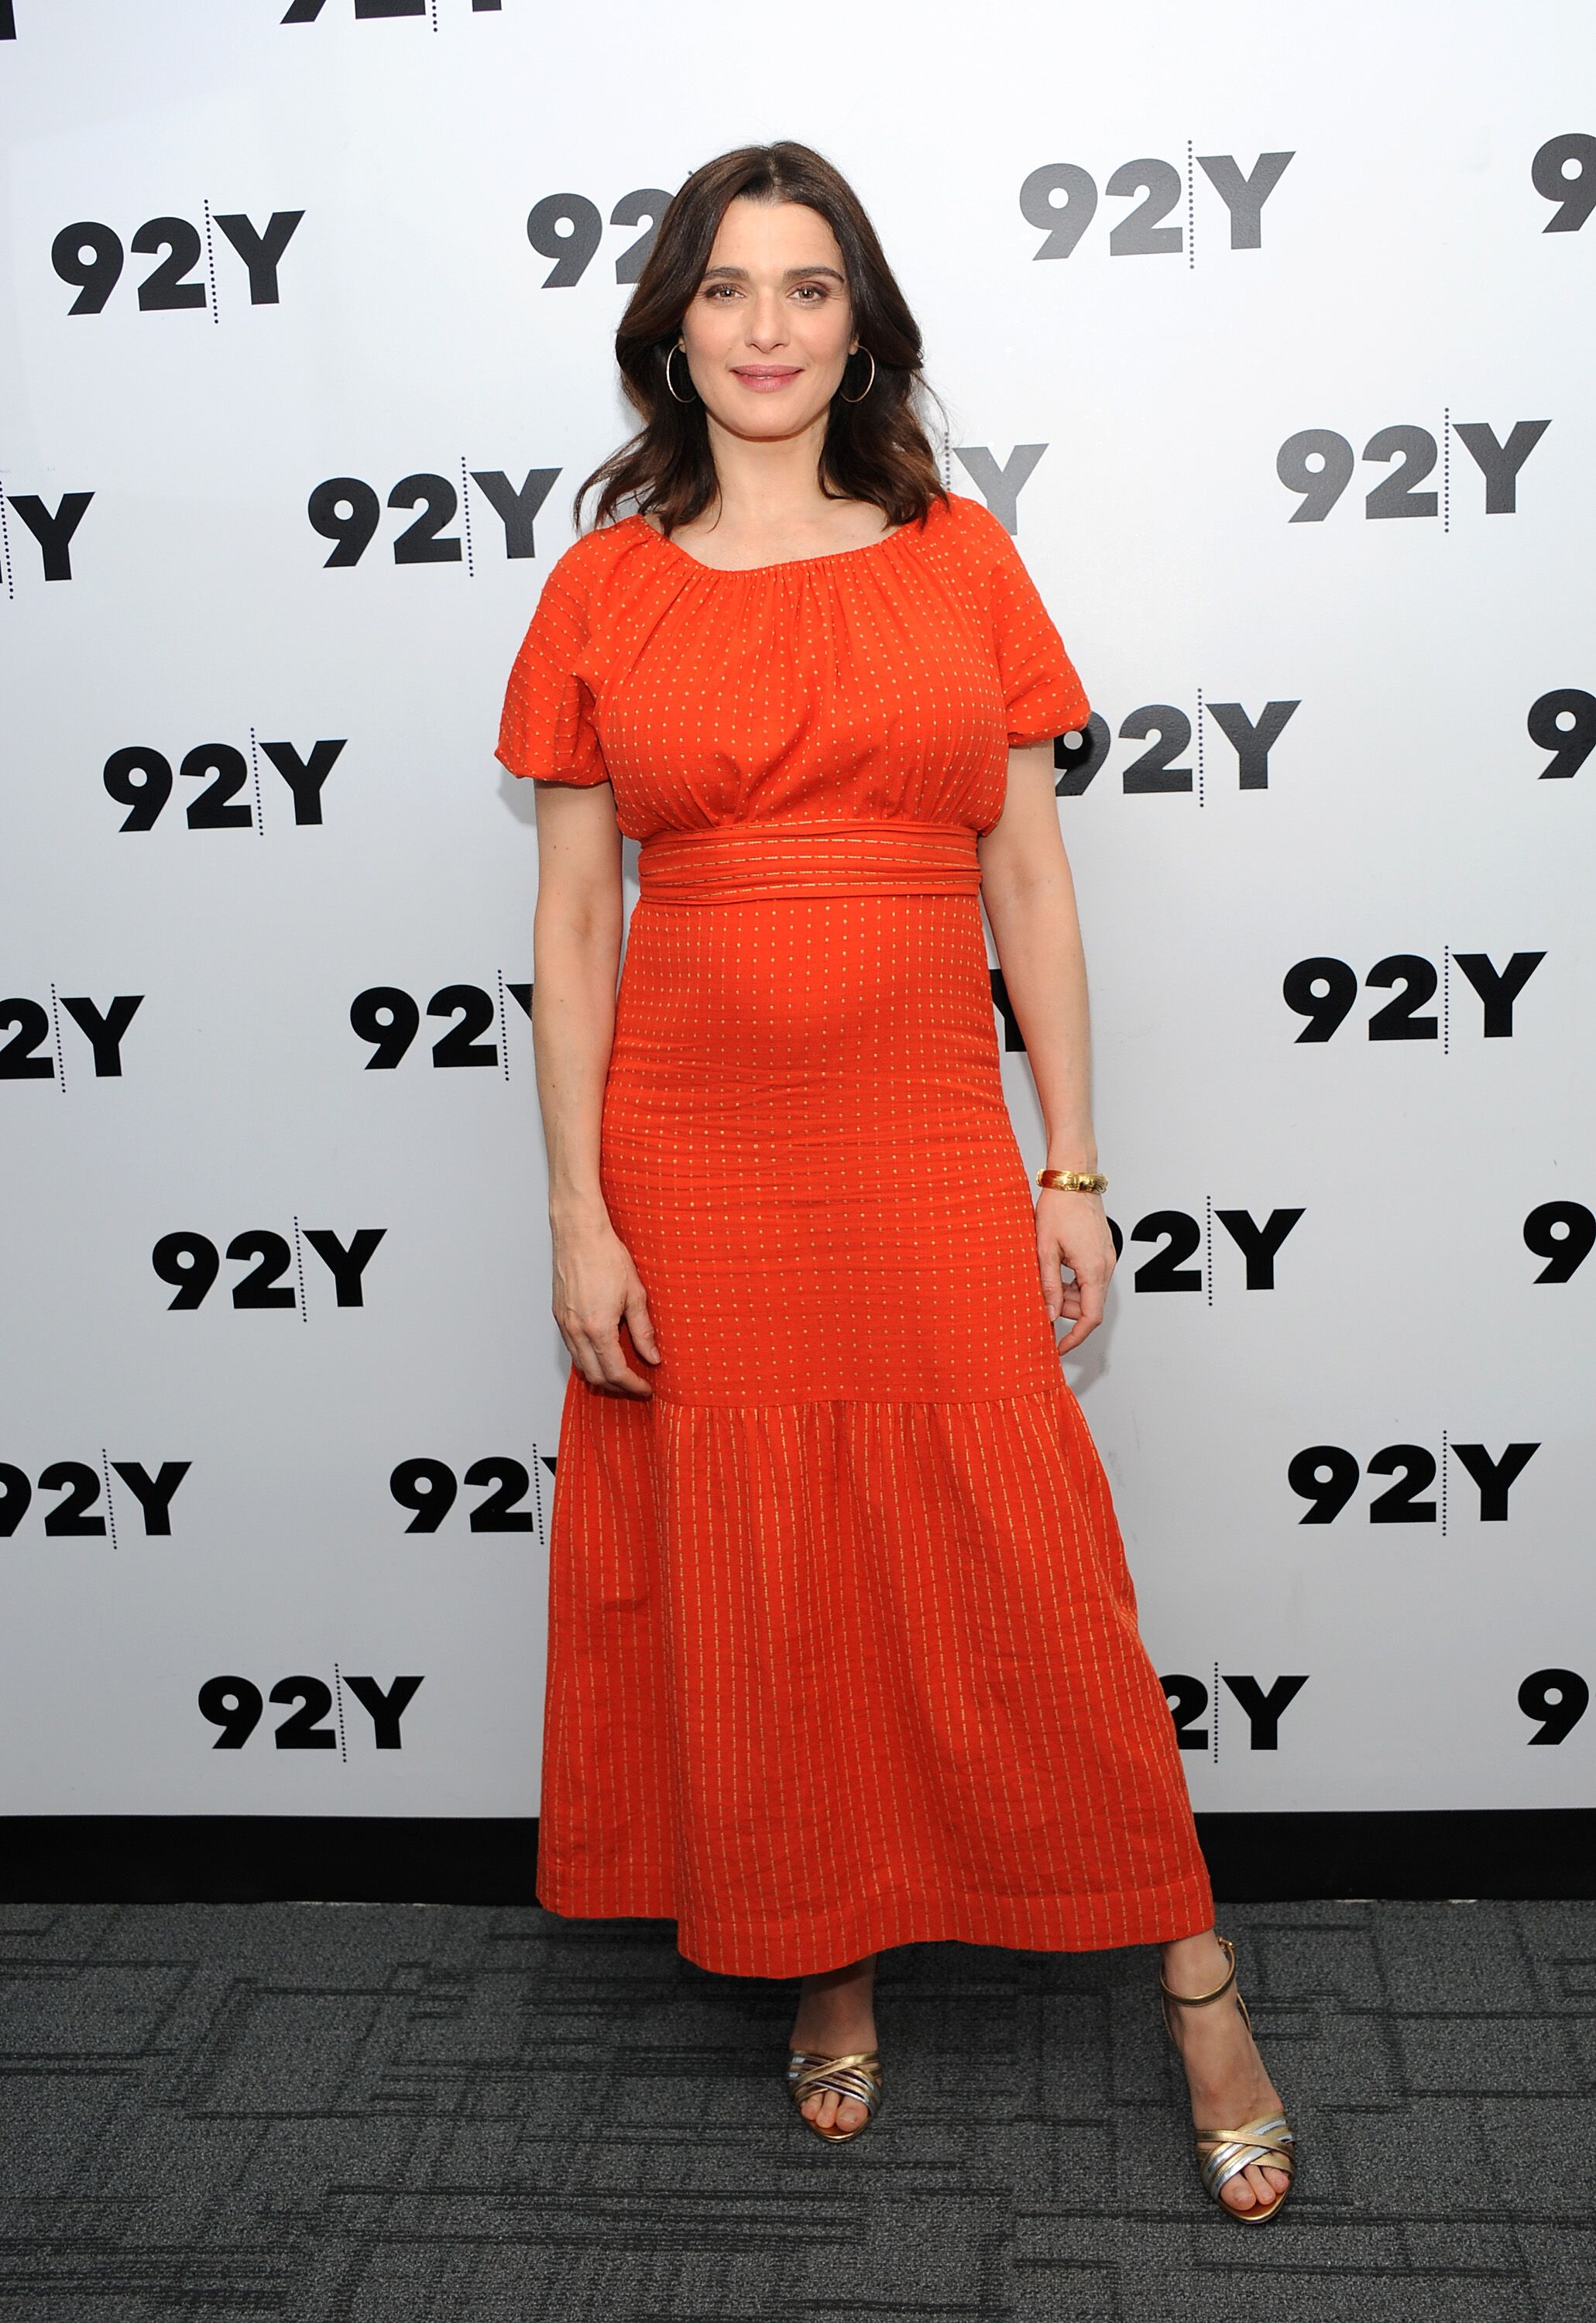 Rachel Weisz attends 92nd Street Y Presents: Rachel Weisz. | Source: Getty Images